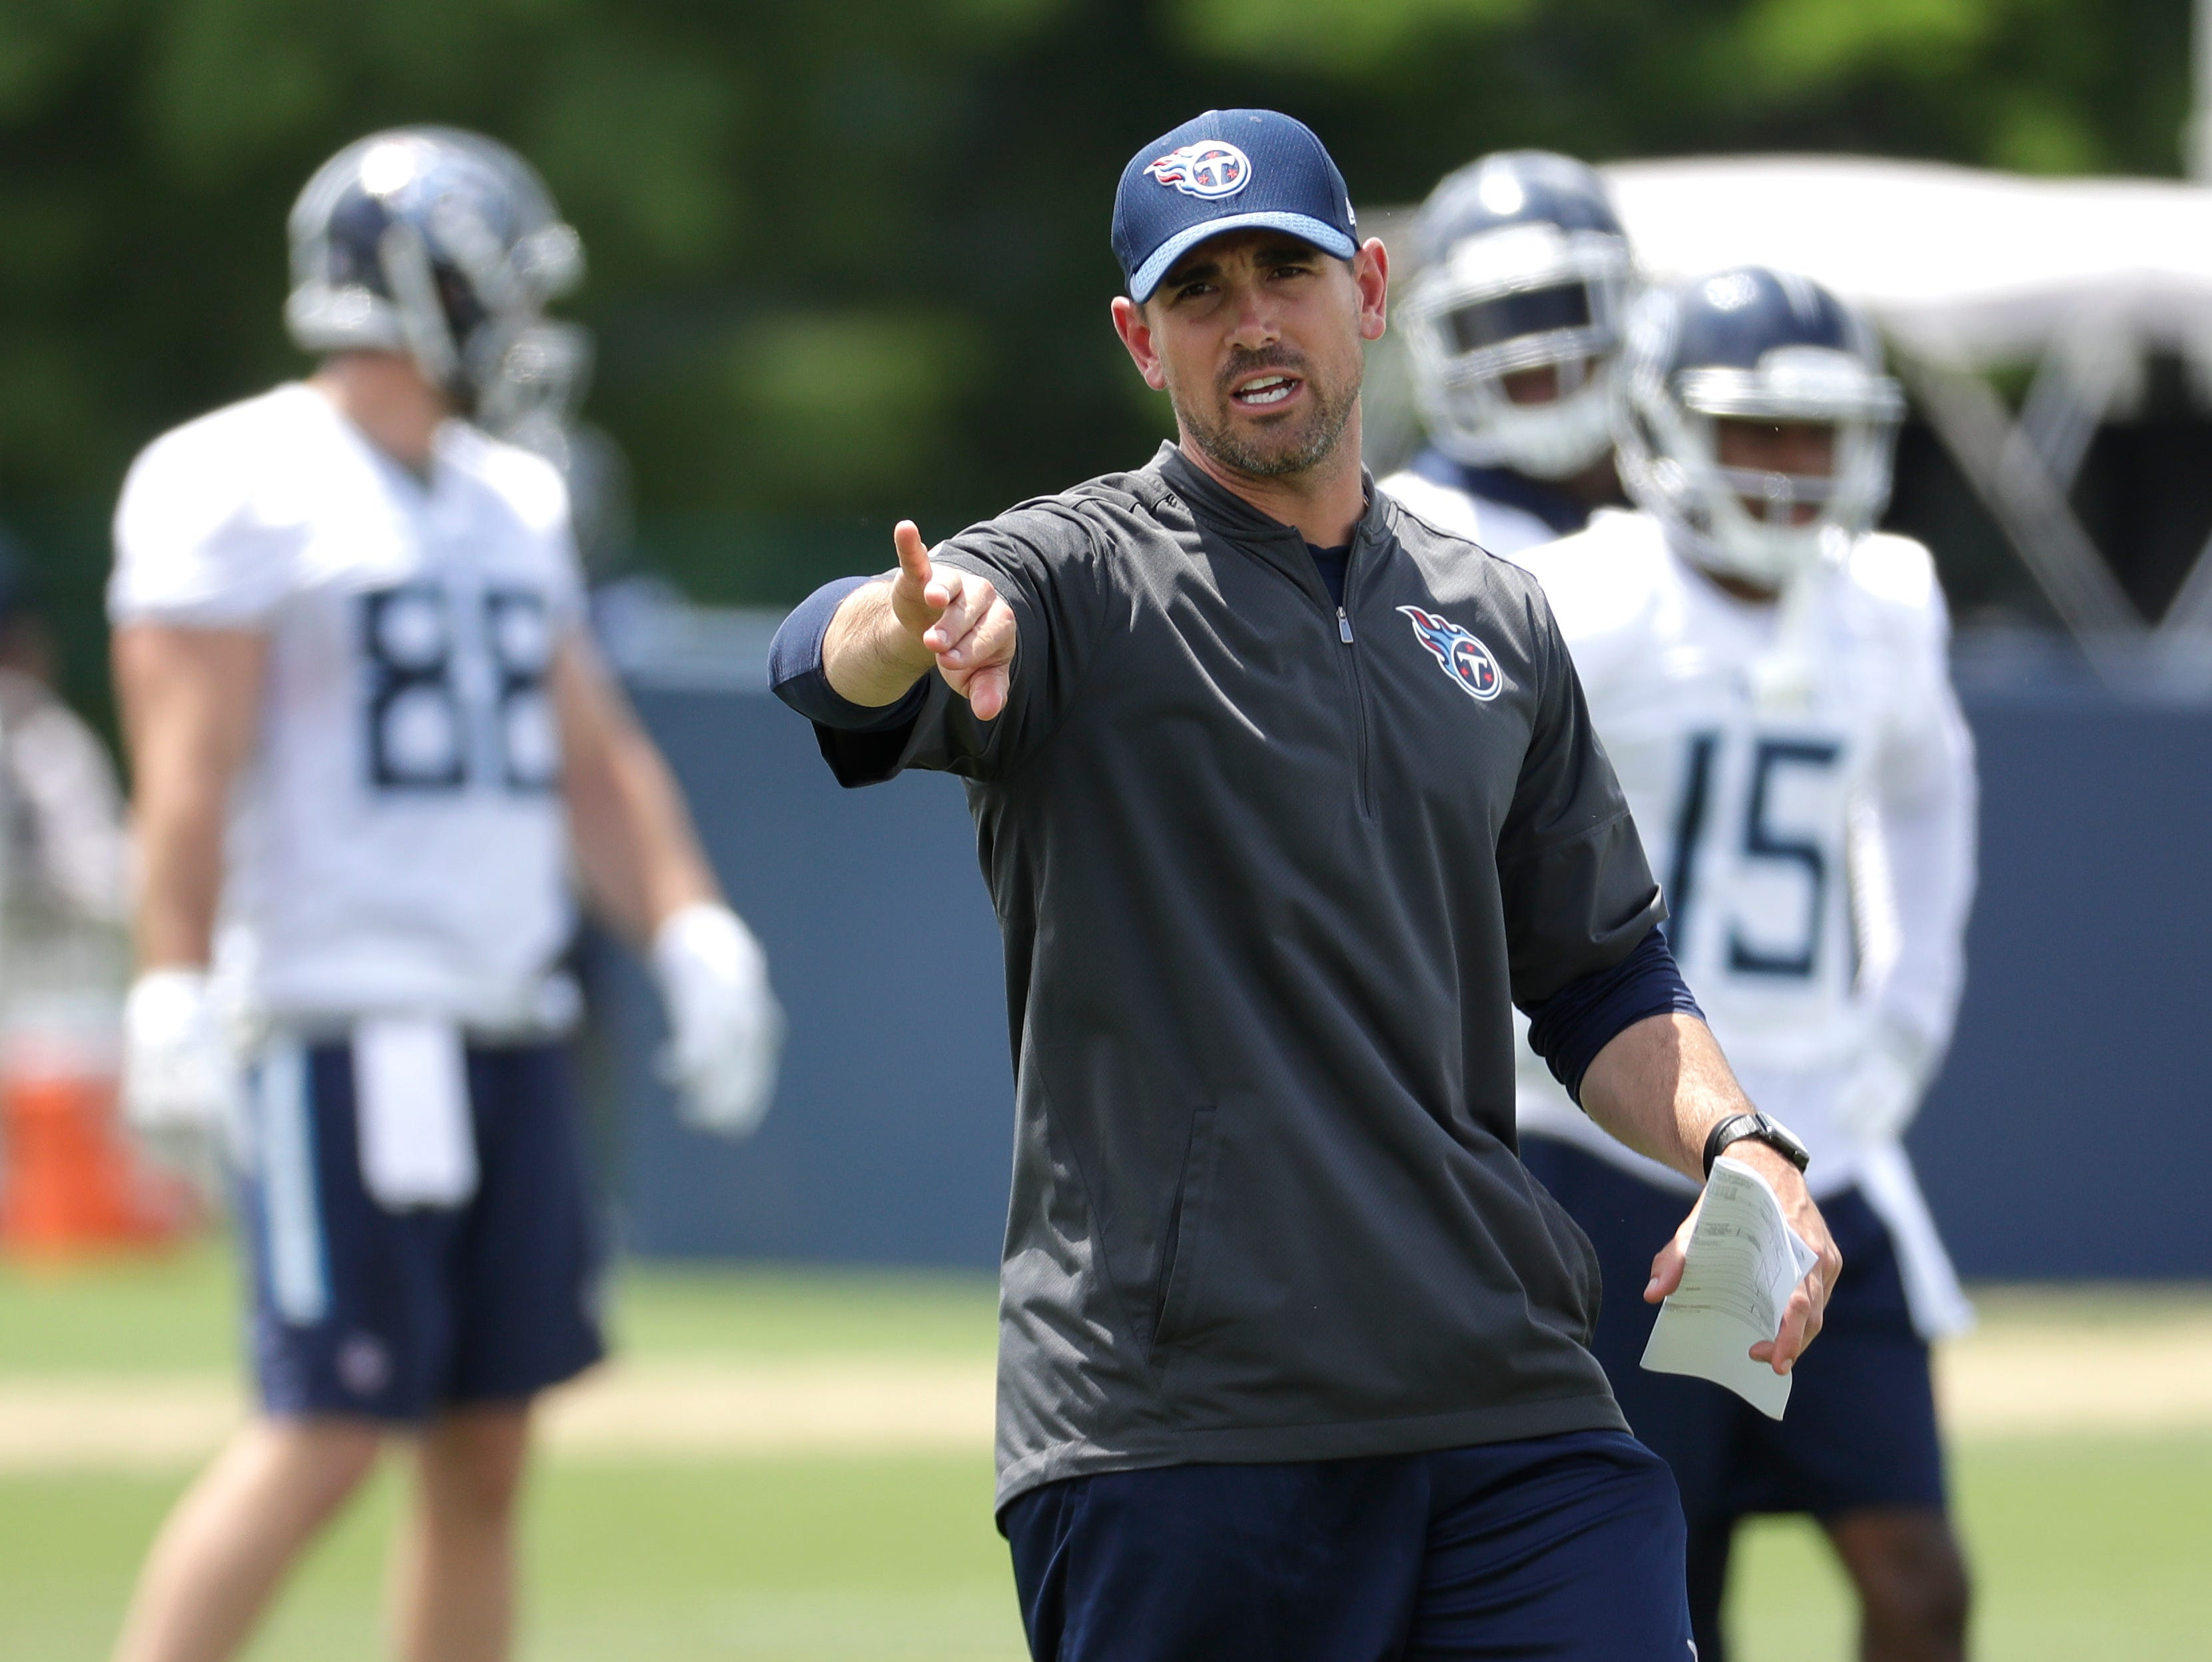 Tennessee Titans offensive coordinator Matt LaFleur runs a drill during an organized team activity at the Titans' NFL football training facility Tuesday, May 22, 2018, in Nashville, Tenn. (AP Photo/Mark Humphrey)